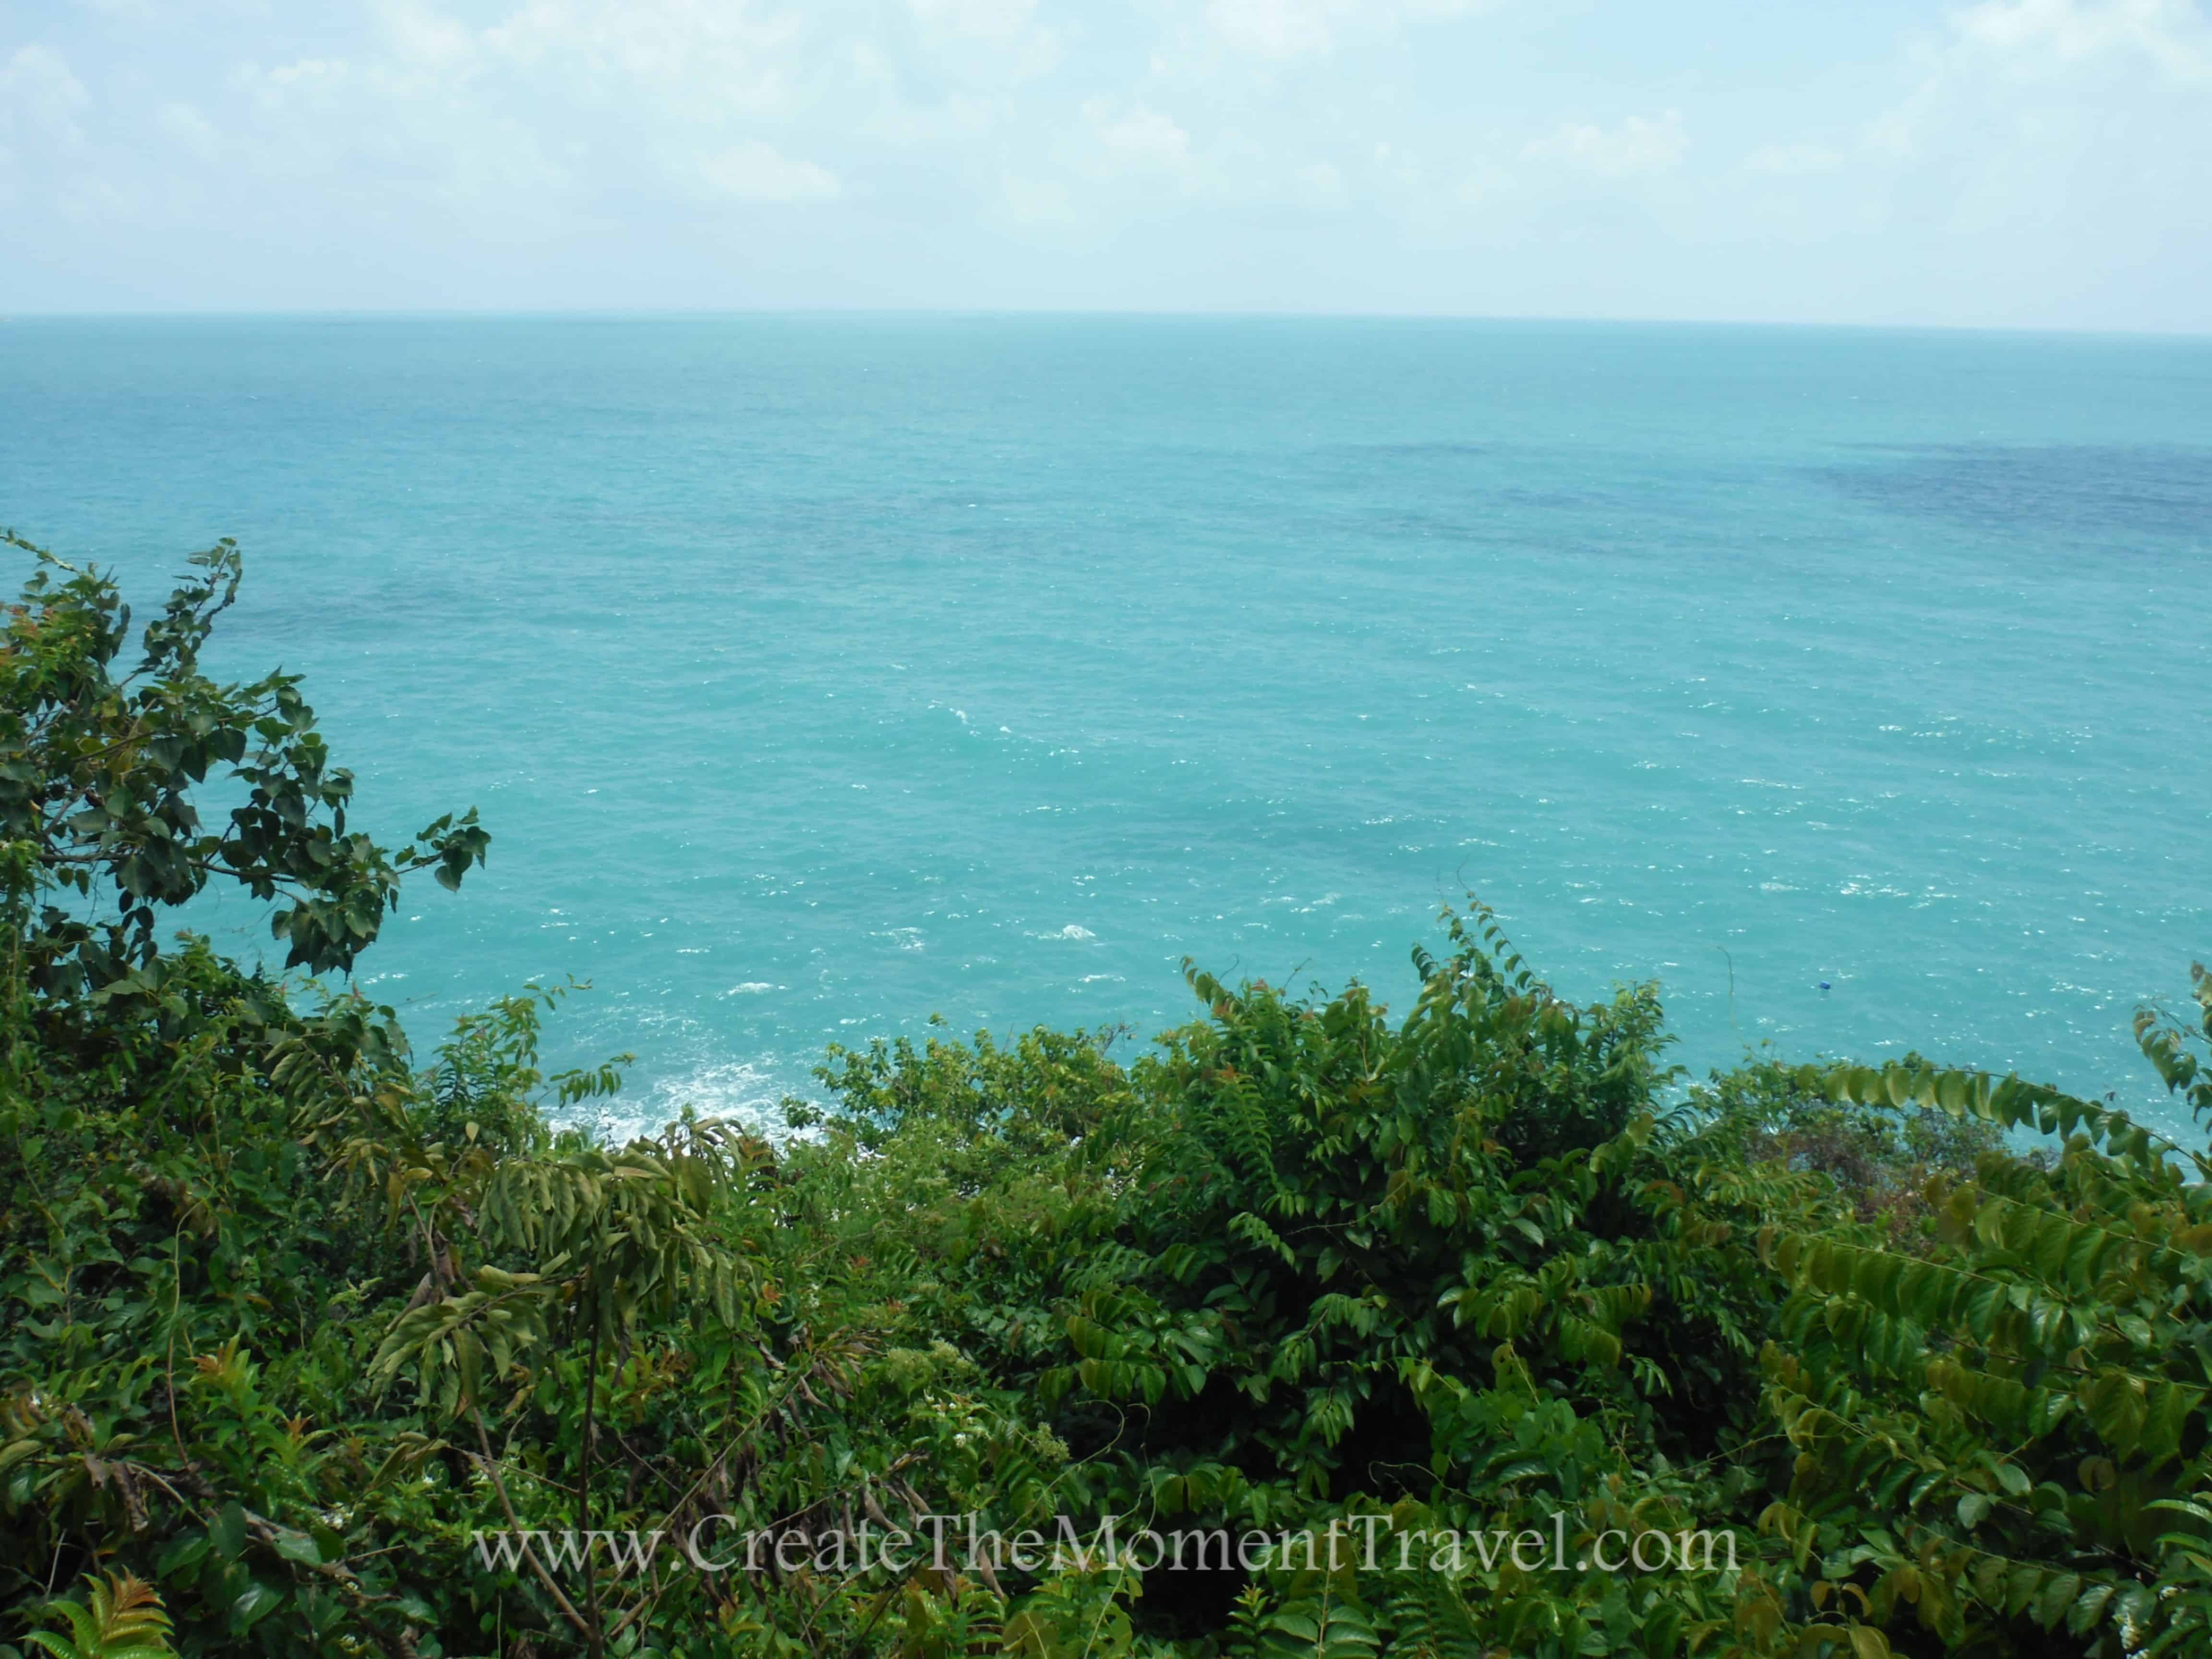 Koh Samui Water View by Create The Moment Travel